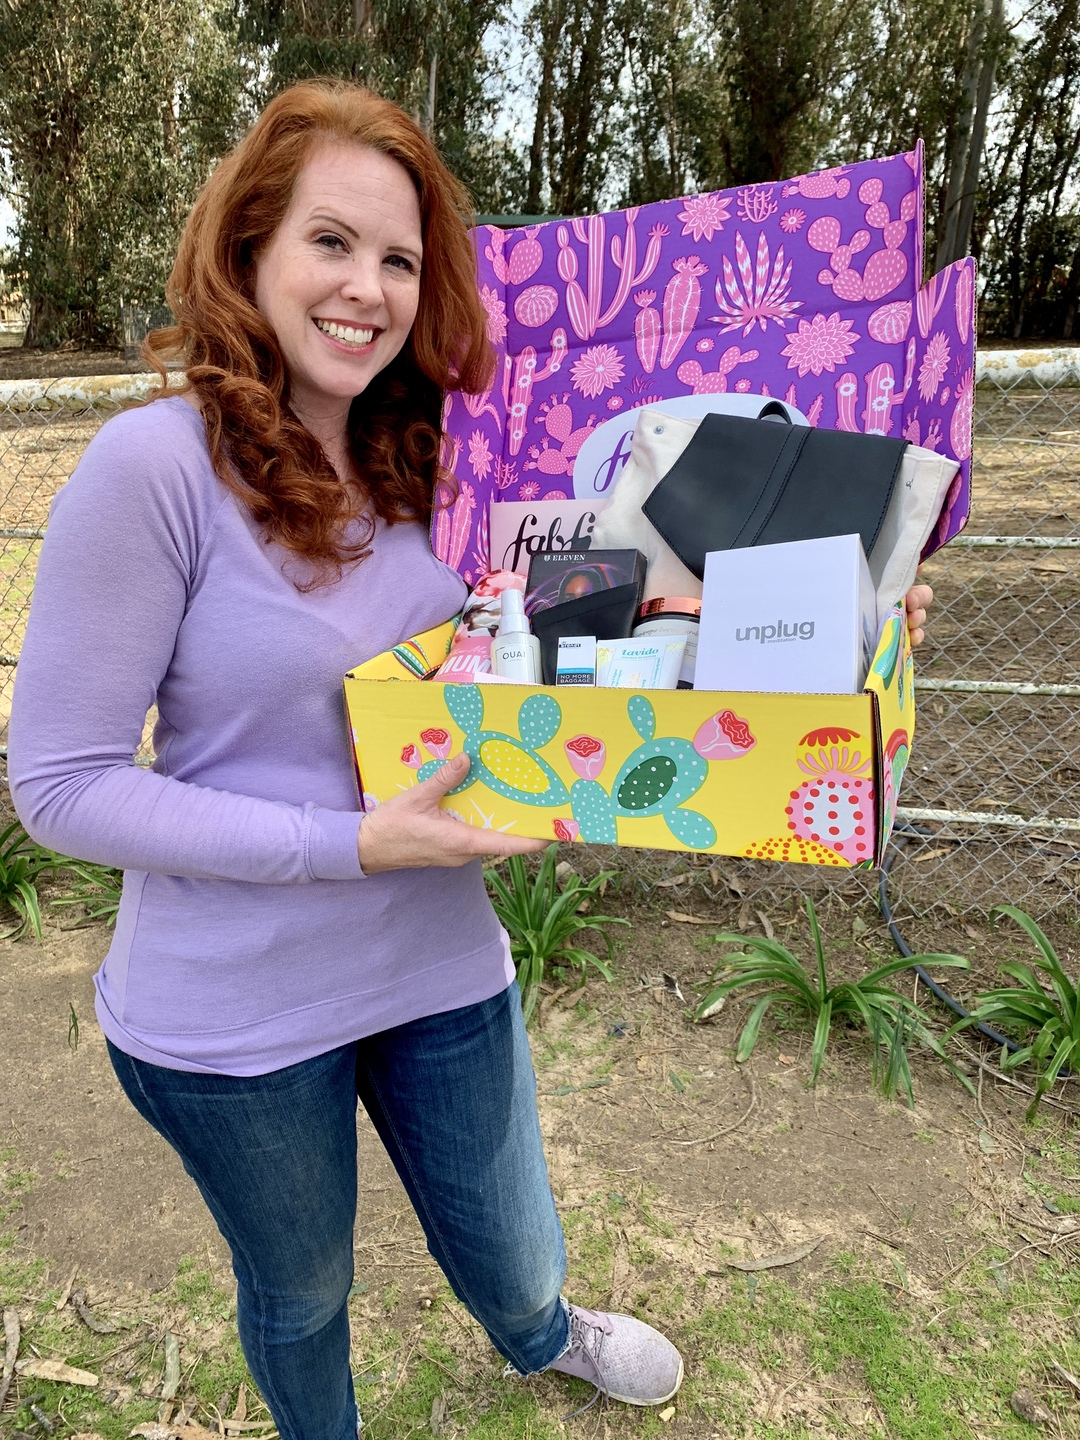 A woman holding a FabFitFun subscription box